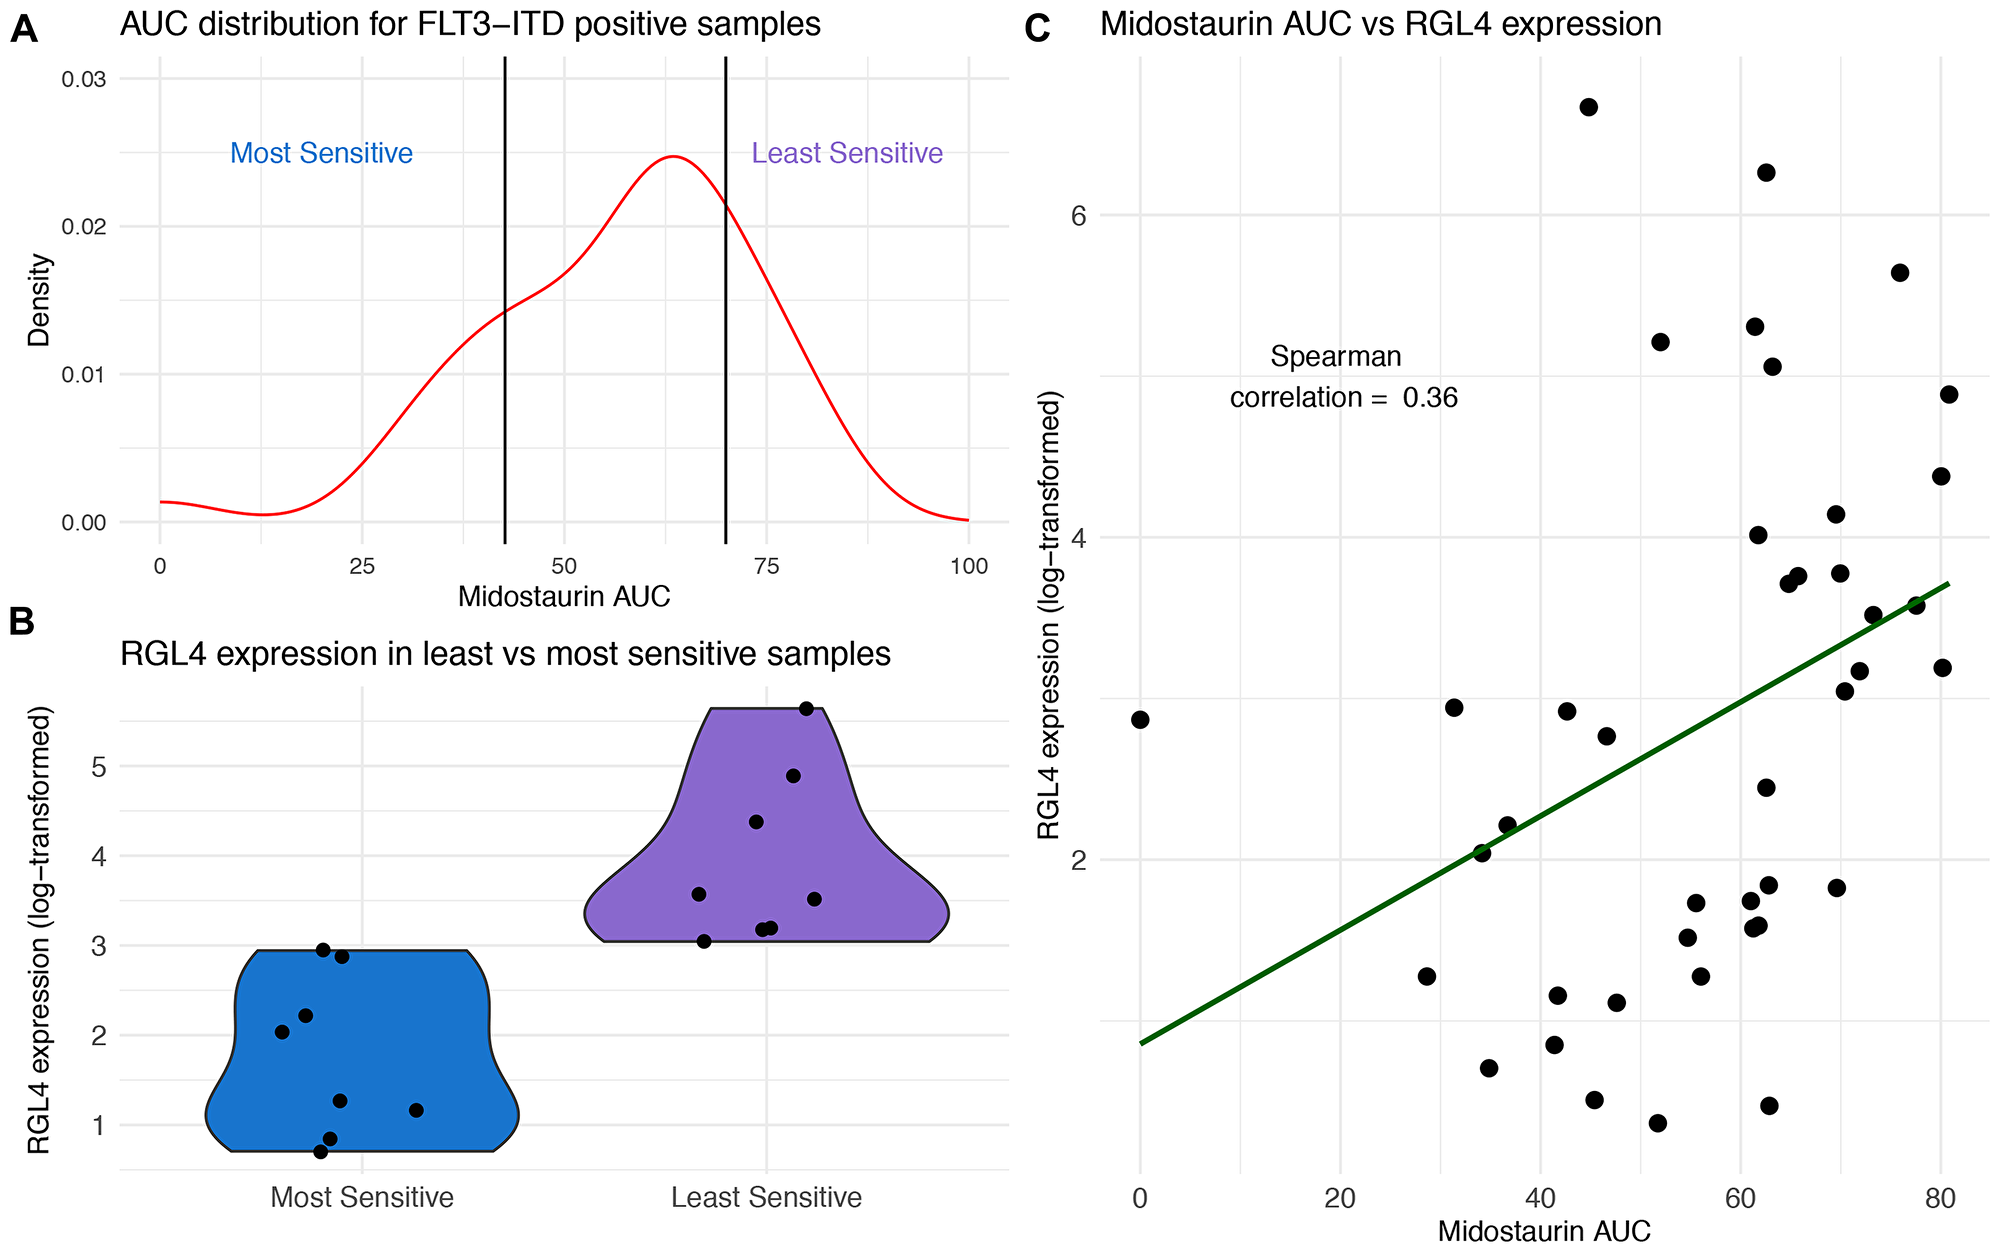 RGL4 expression correlates with response to midostaurin in FLT3-ITD positive samples.